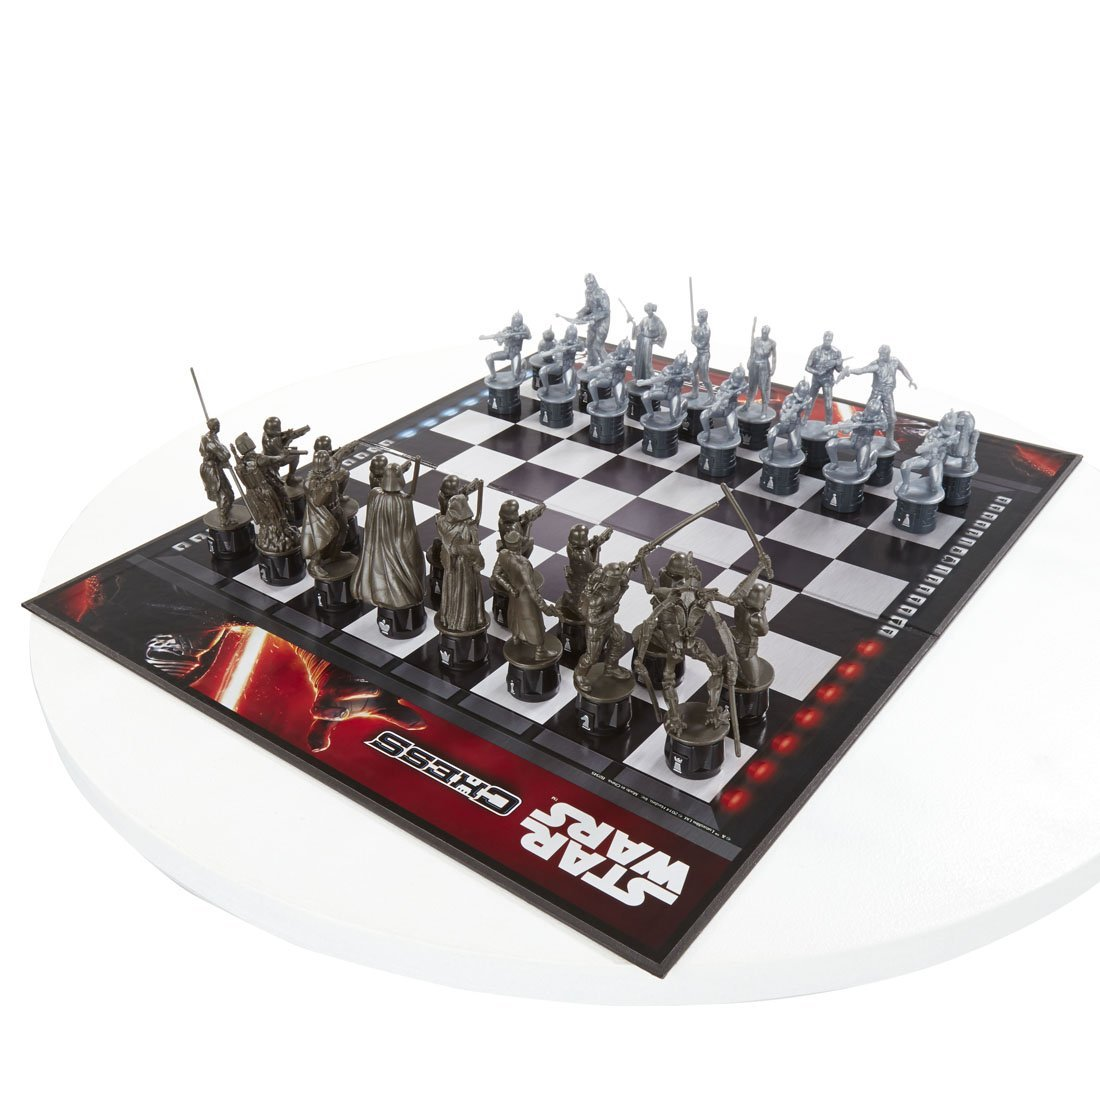 Star wars the force awakens chess game Where can i buy a chess game